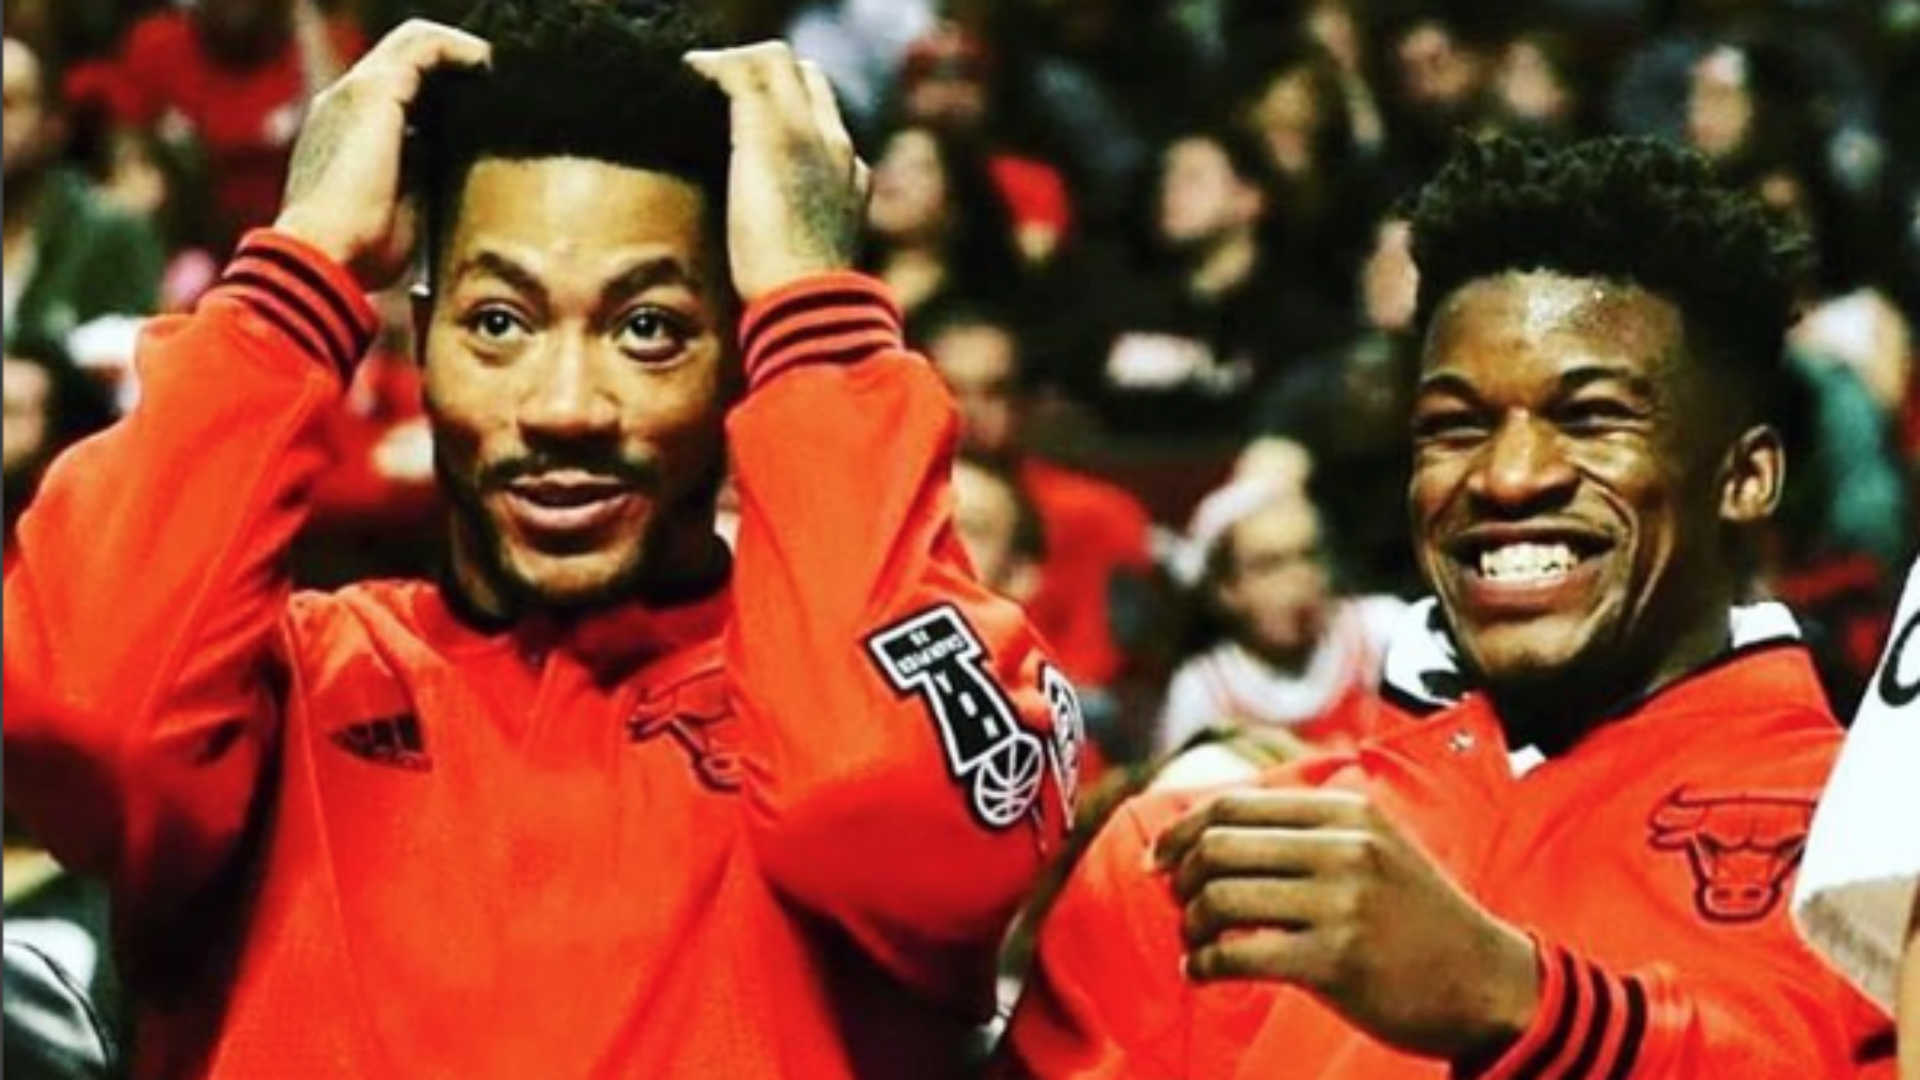 Derrick-rose-left-and-jimmy-butler_efey1kfrtrt81rdsile5psxg5